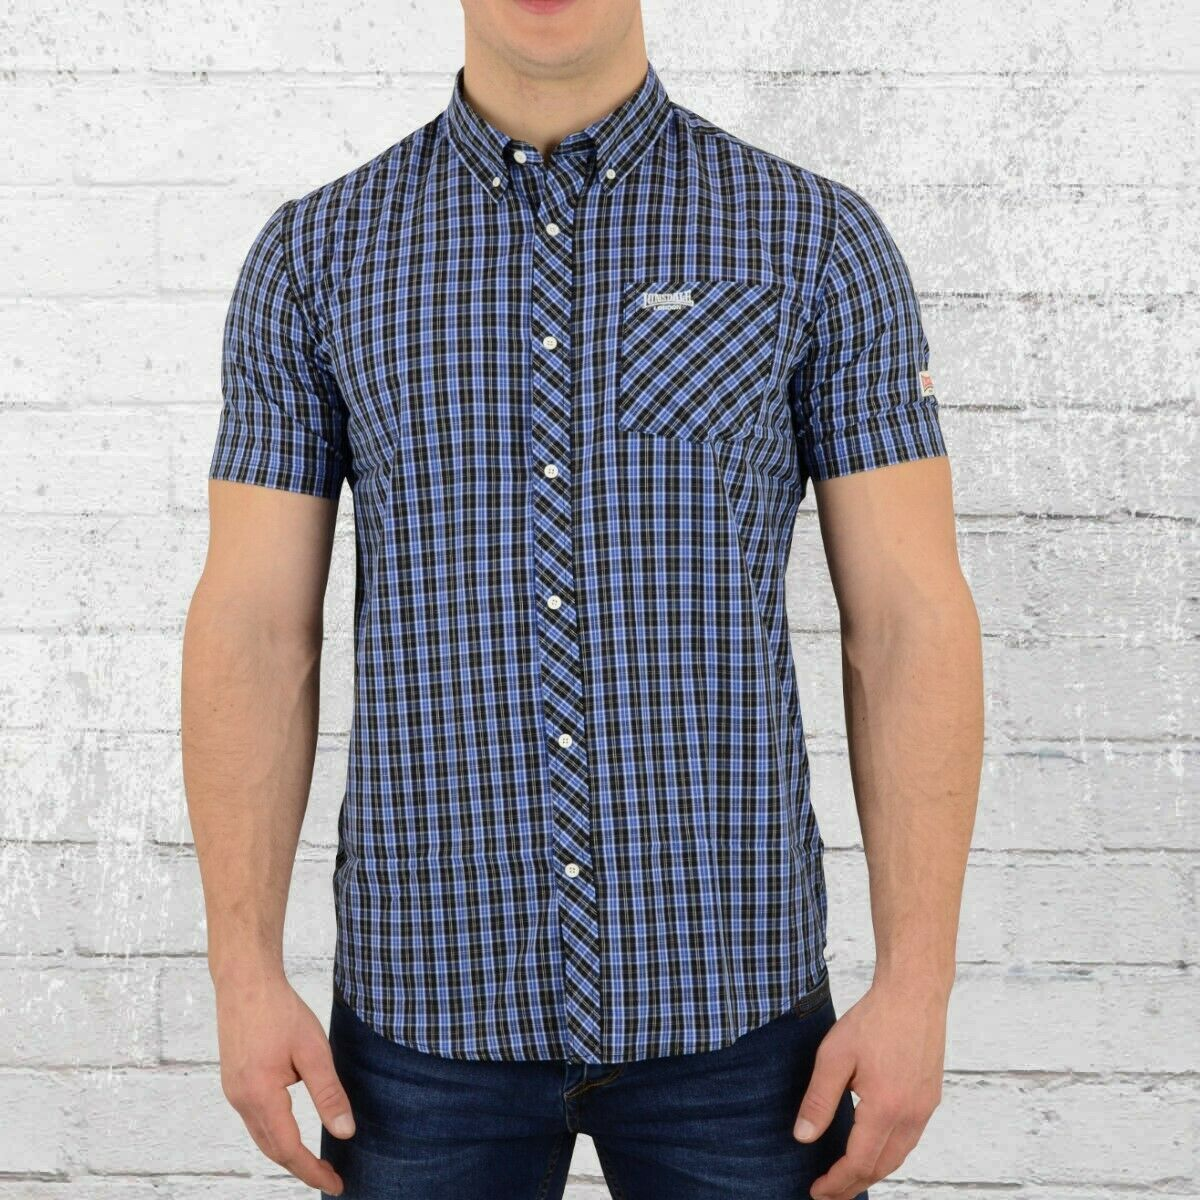 Lonsdale London Button Down Hemd Brixworth blue weiss black Männer Shirt